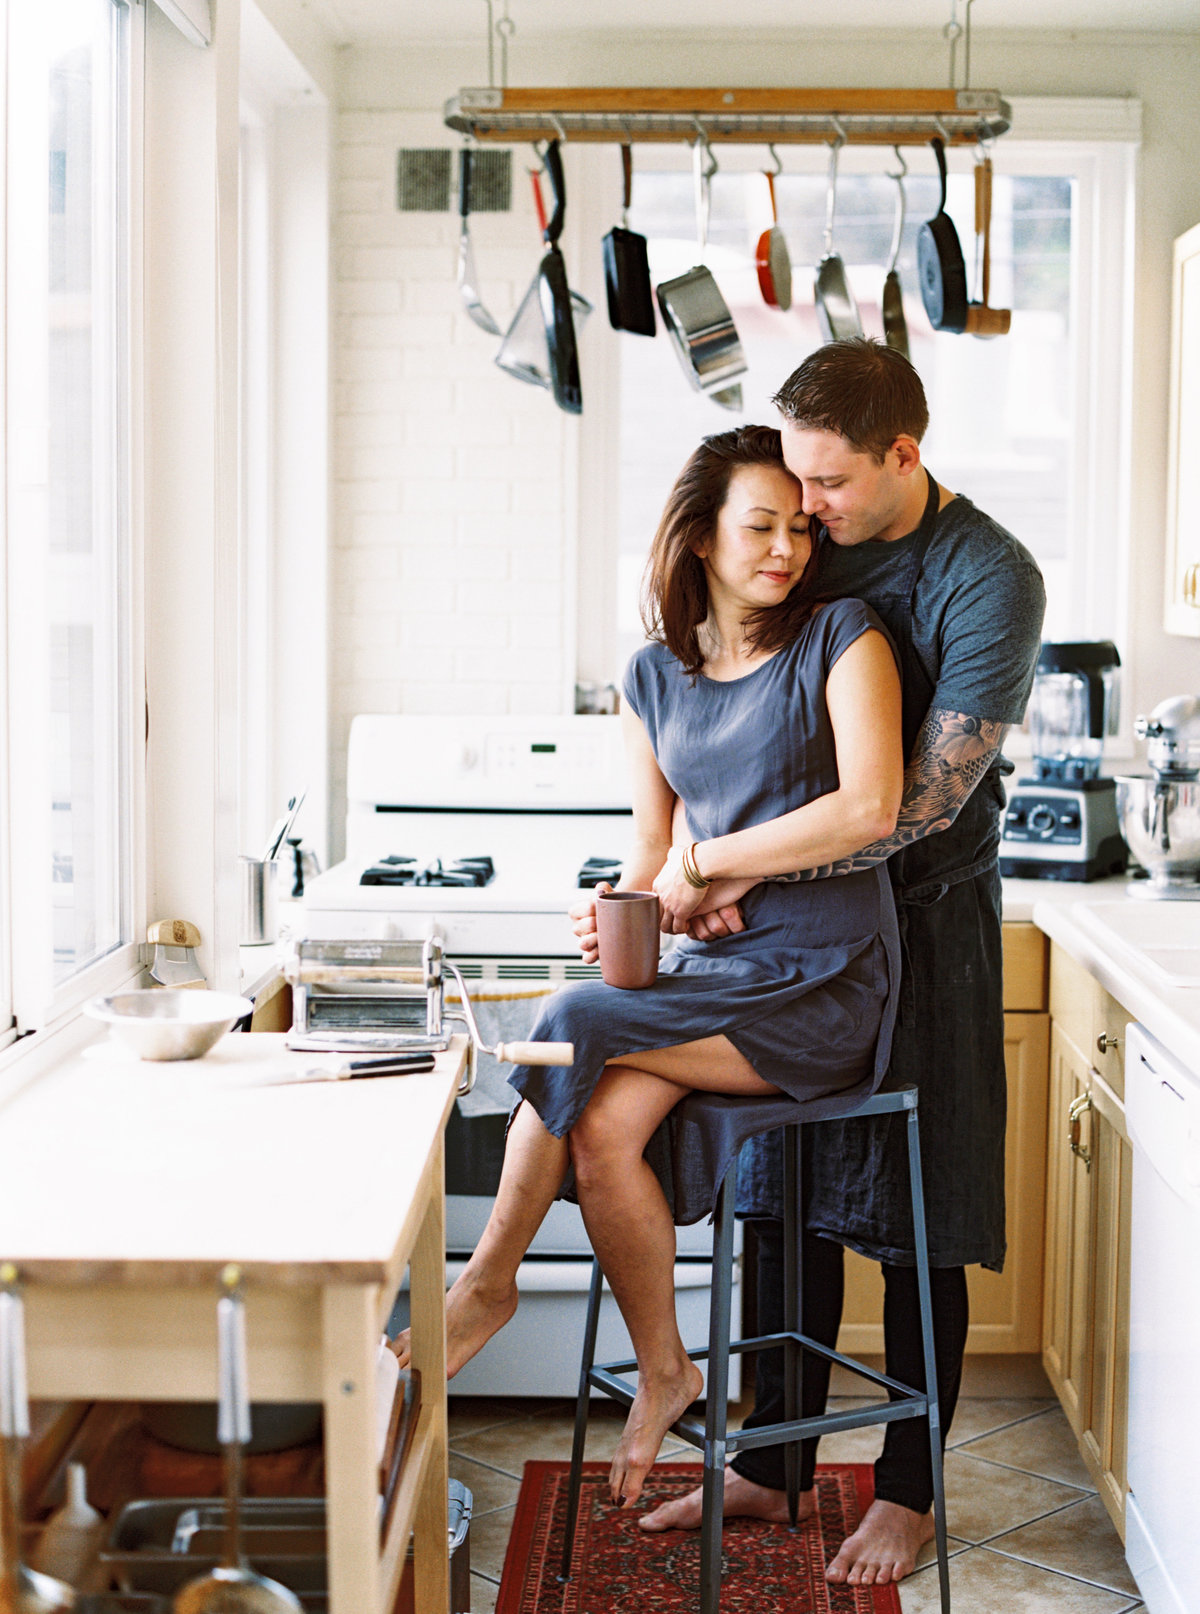 Sachi Sausalito Couples At-Home Lifestyle Session 017